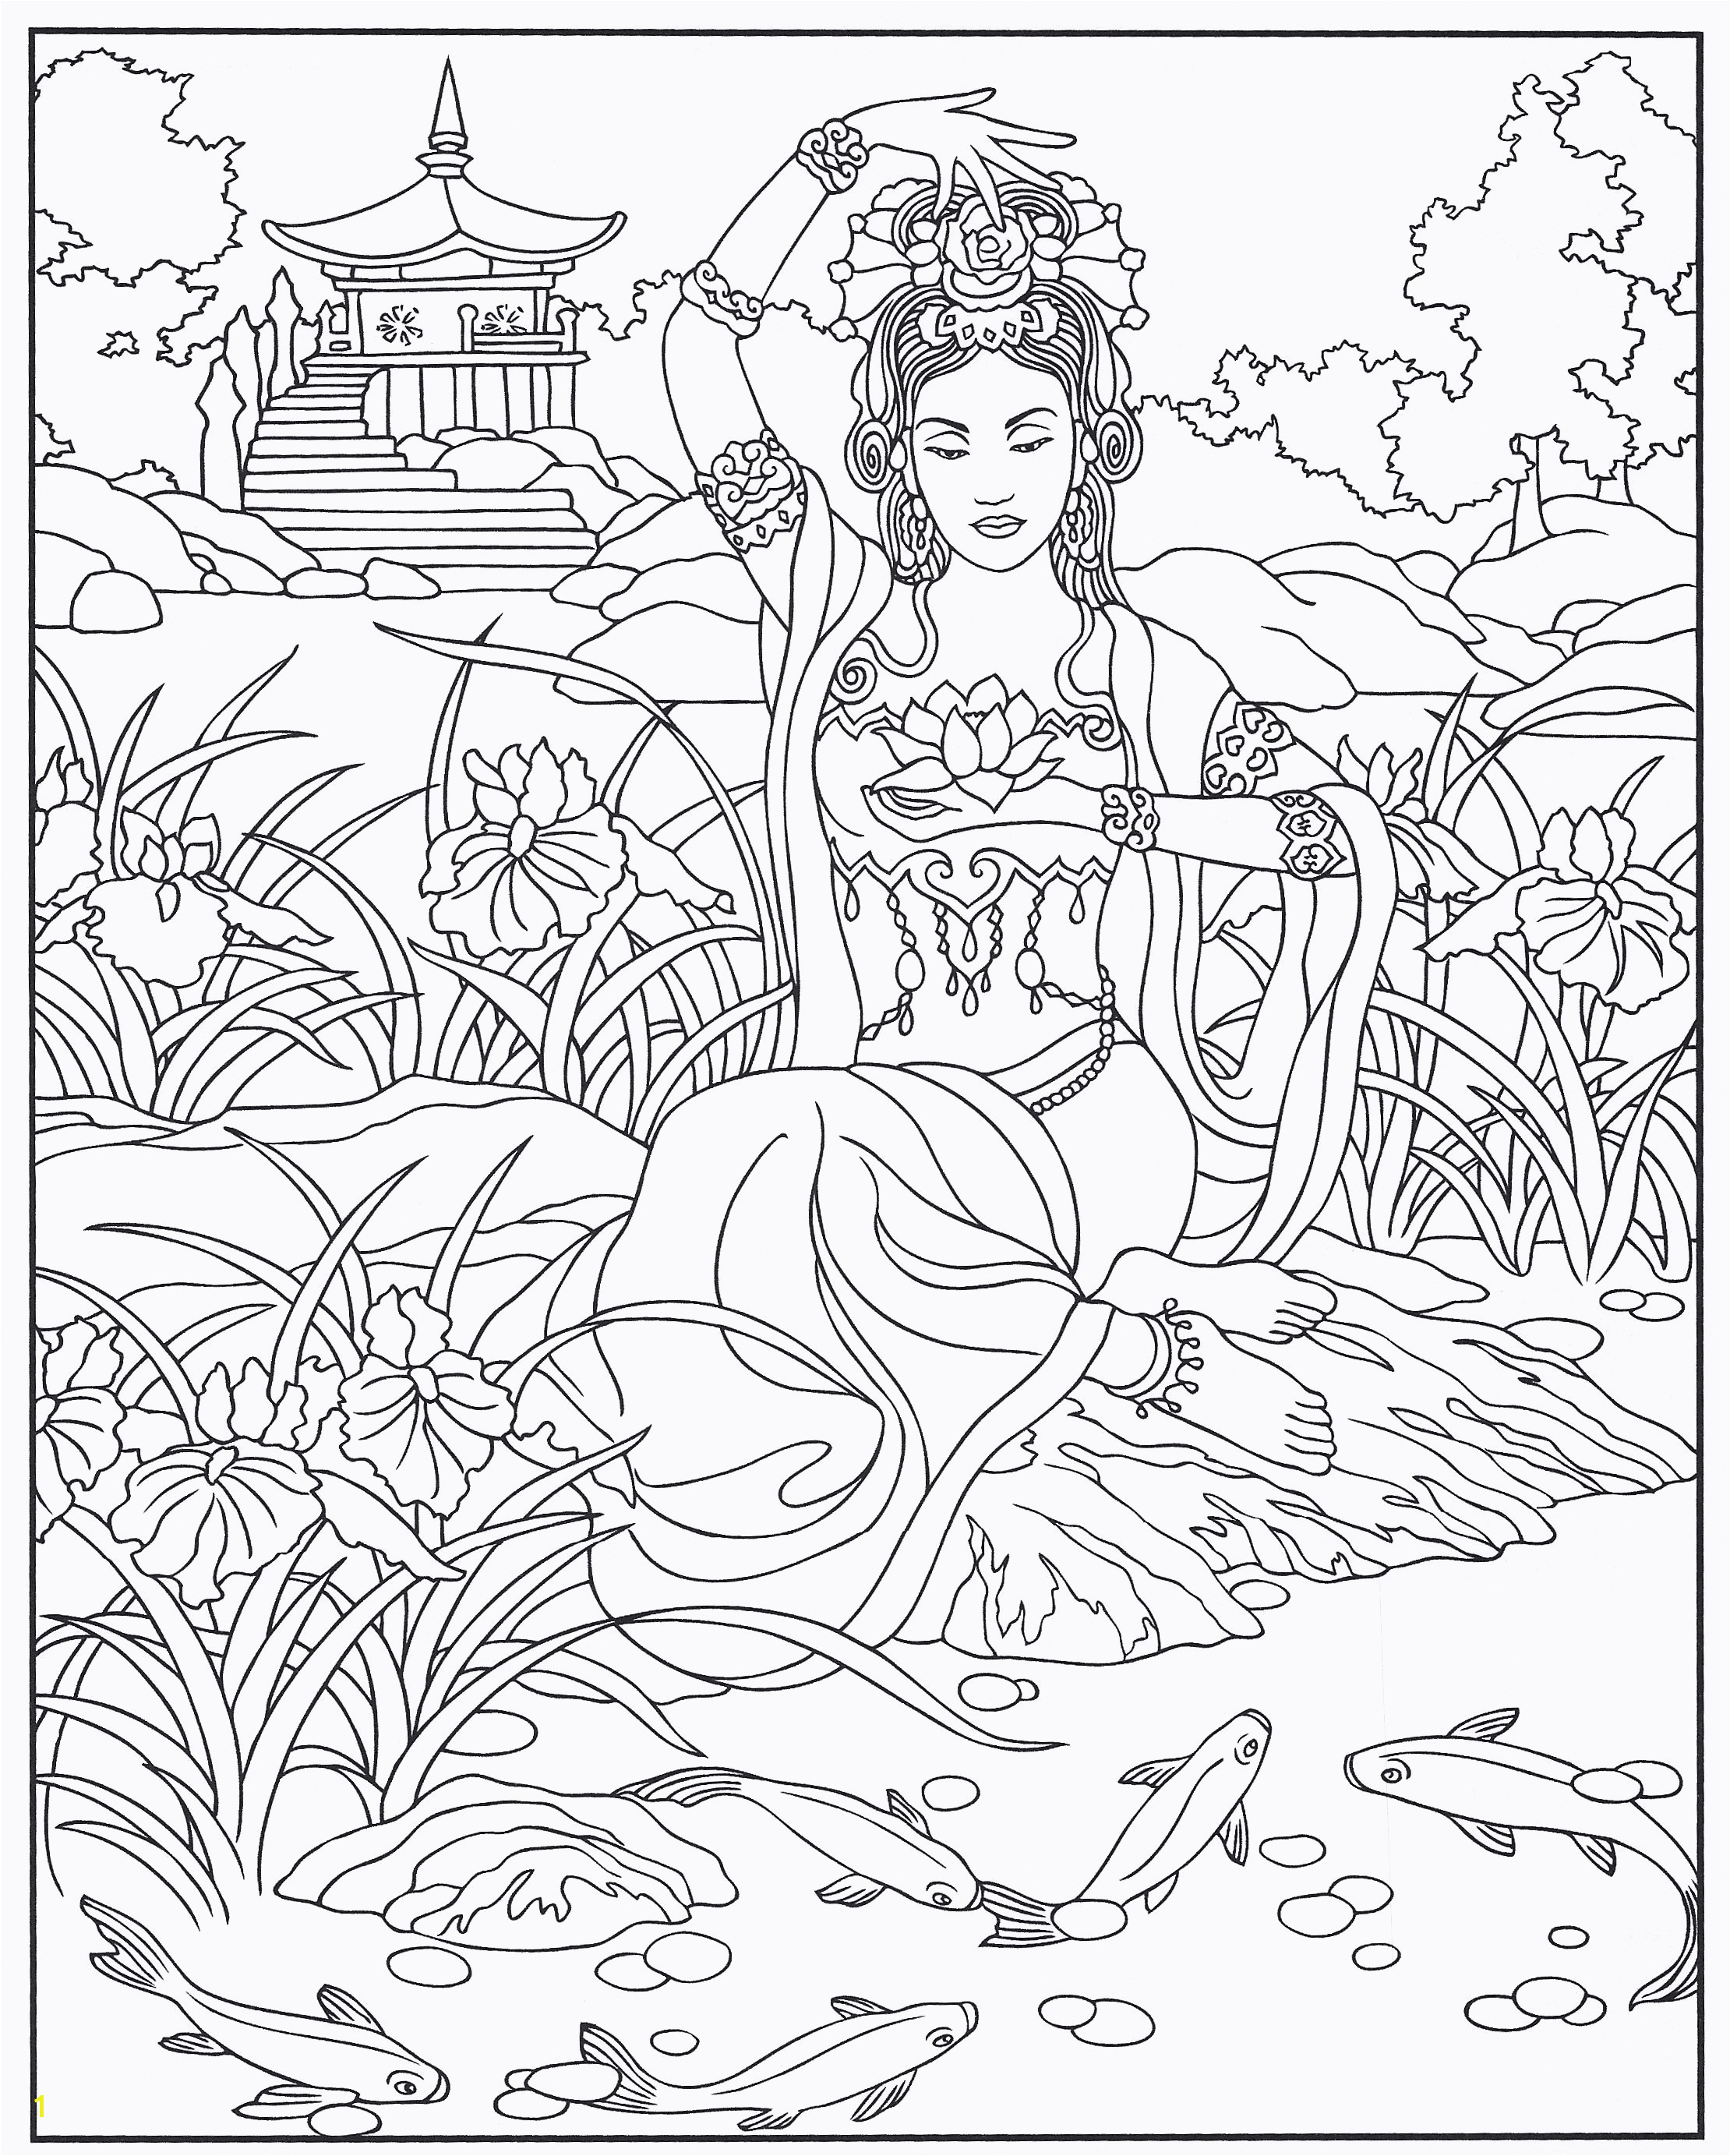 summer coloring sheet cool coloring page unique witch coloring pages new crayola pages 0d free printable